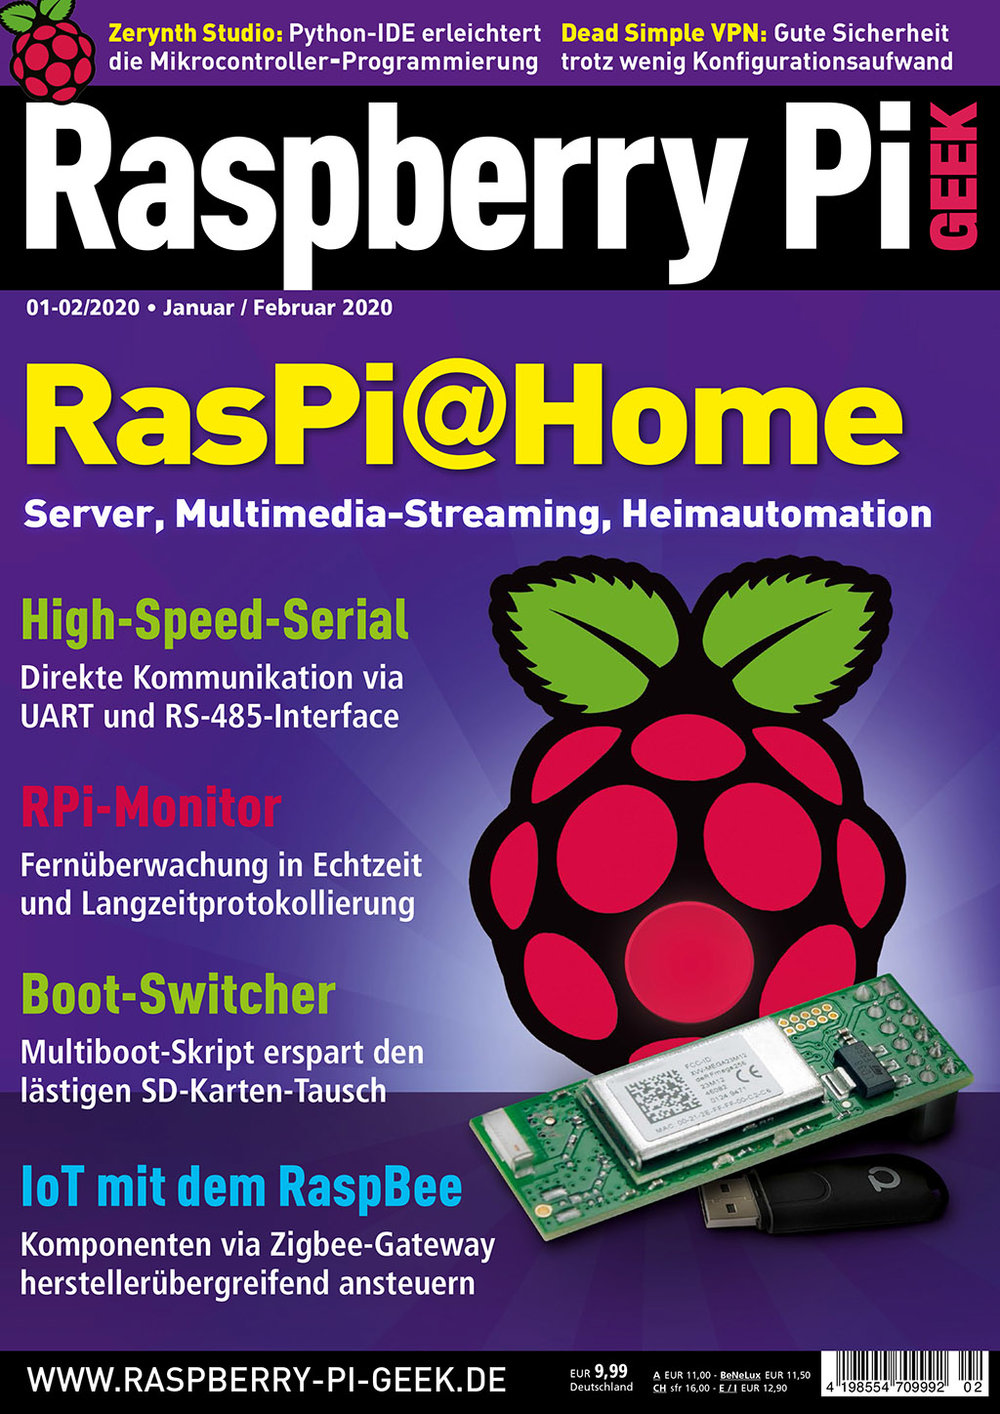 Raspberry Pi Geek 01-02/2020